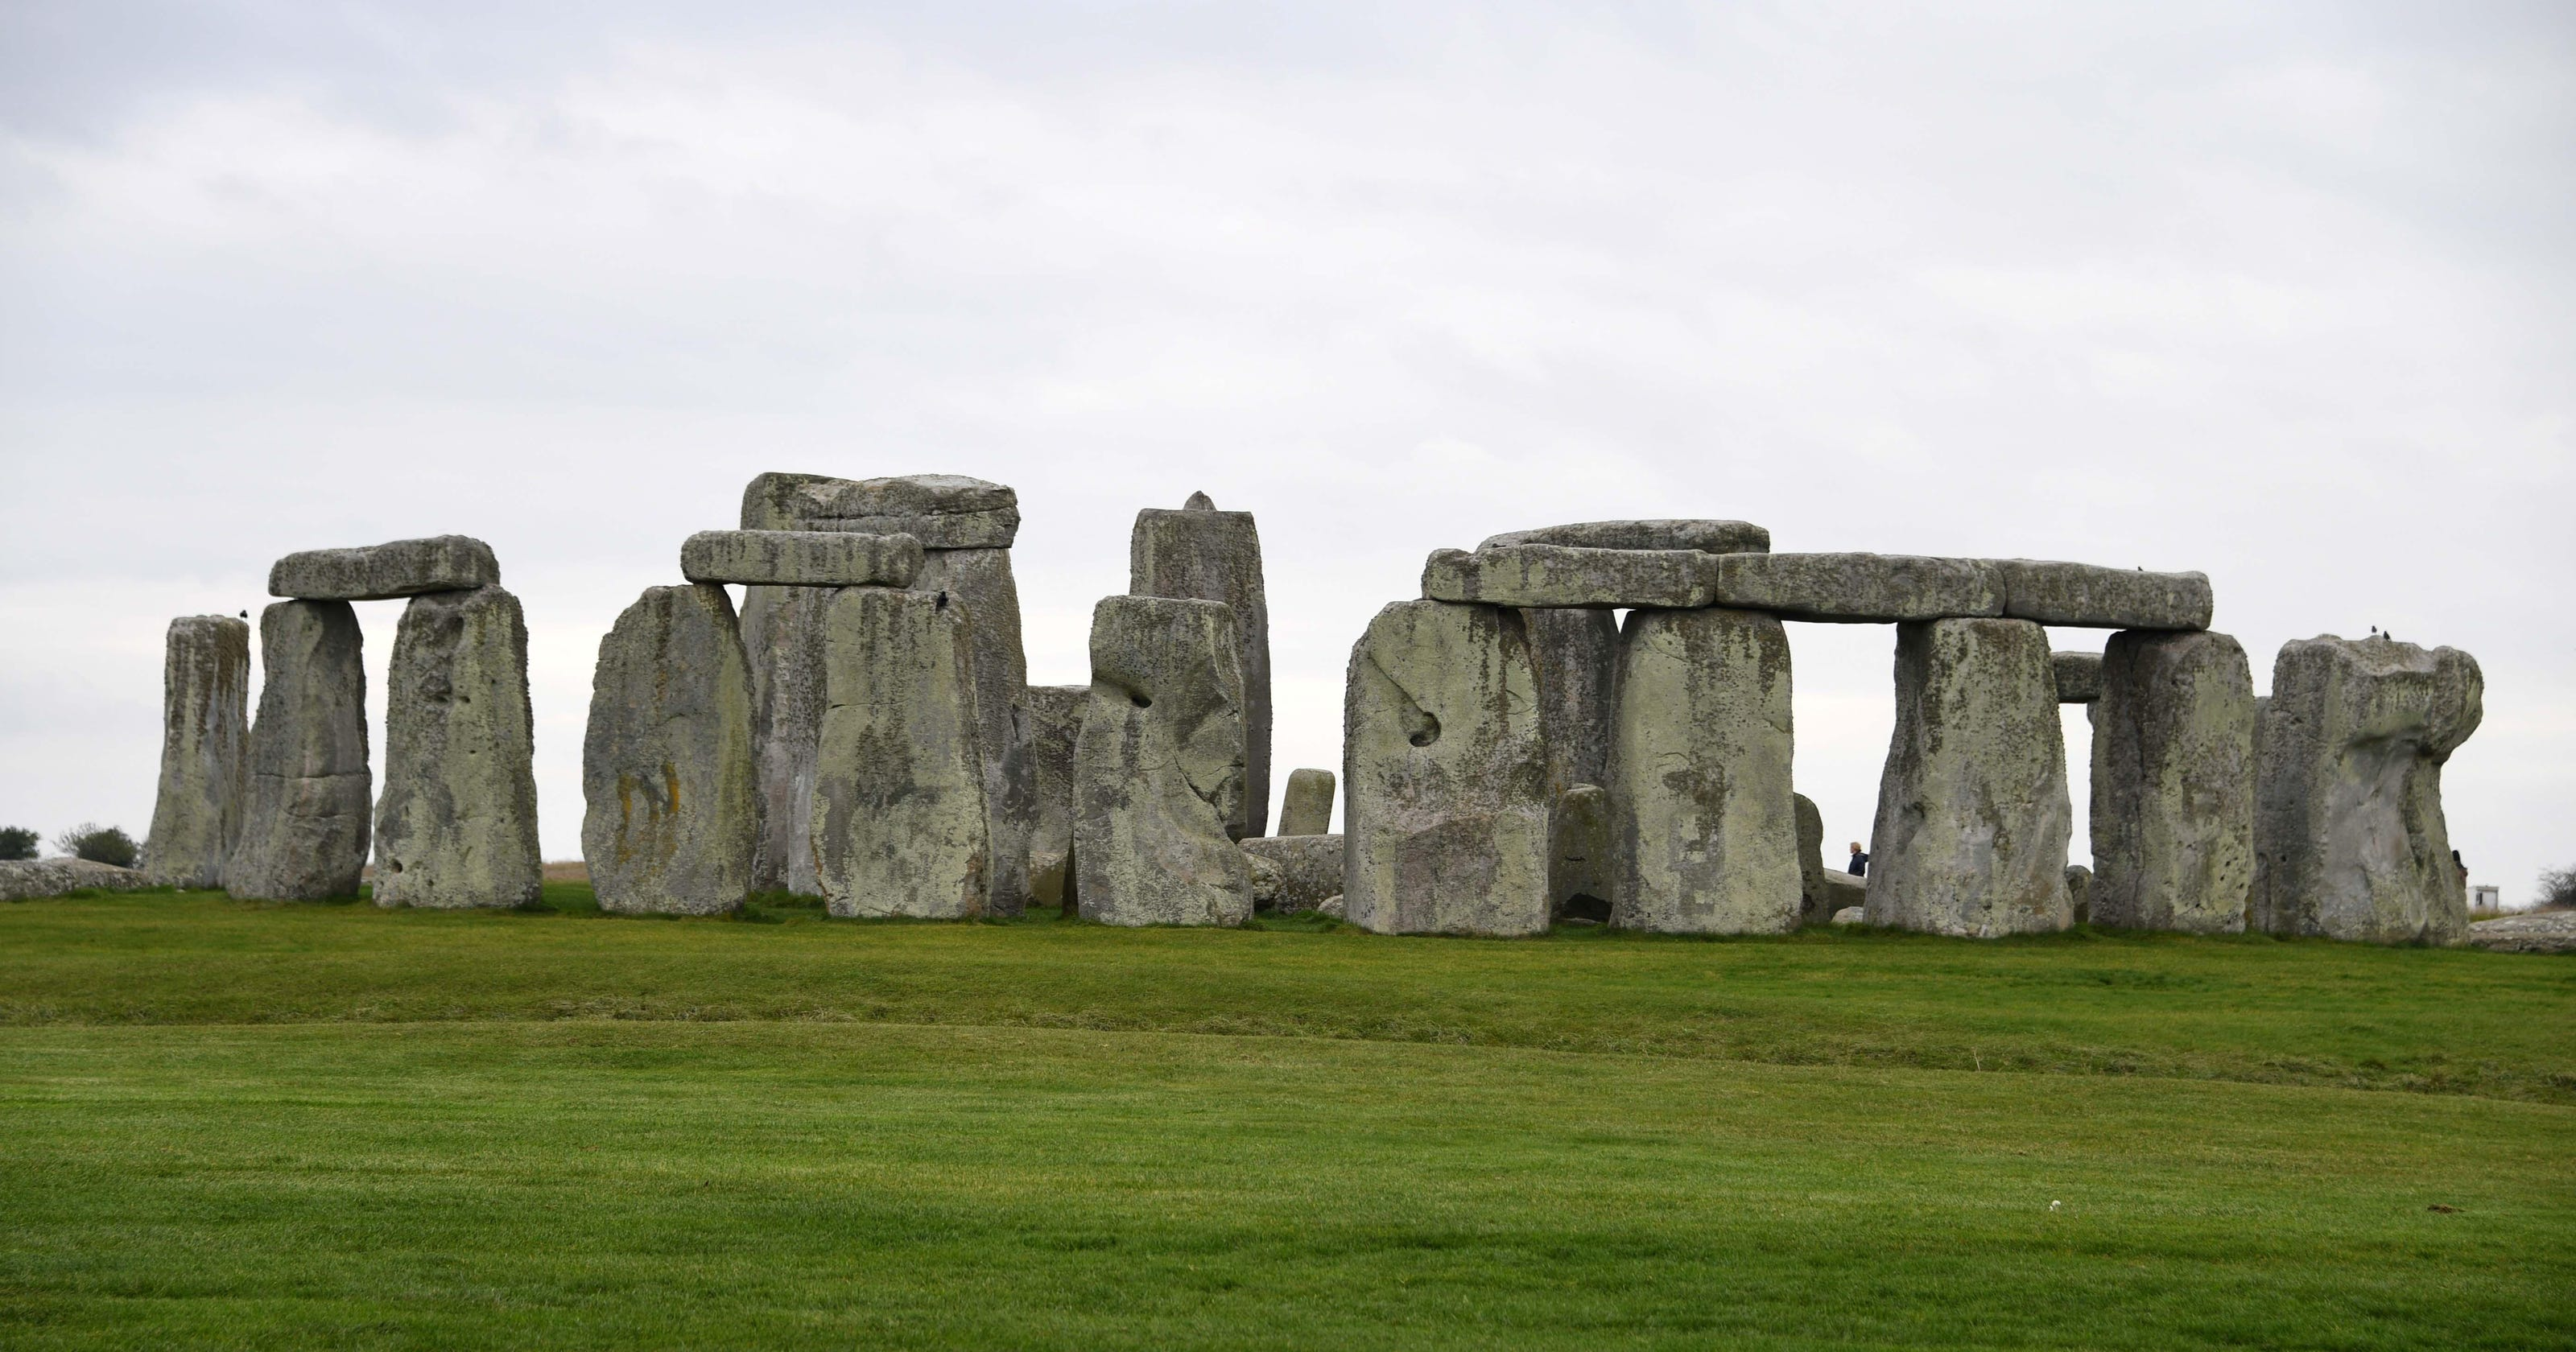 Was Stonehenge moved? New clues suggest the prehistoric monument was first built in Wales - USA TODAY